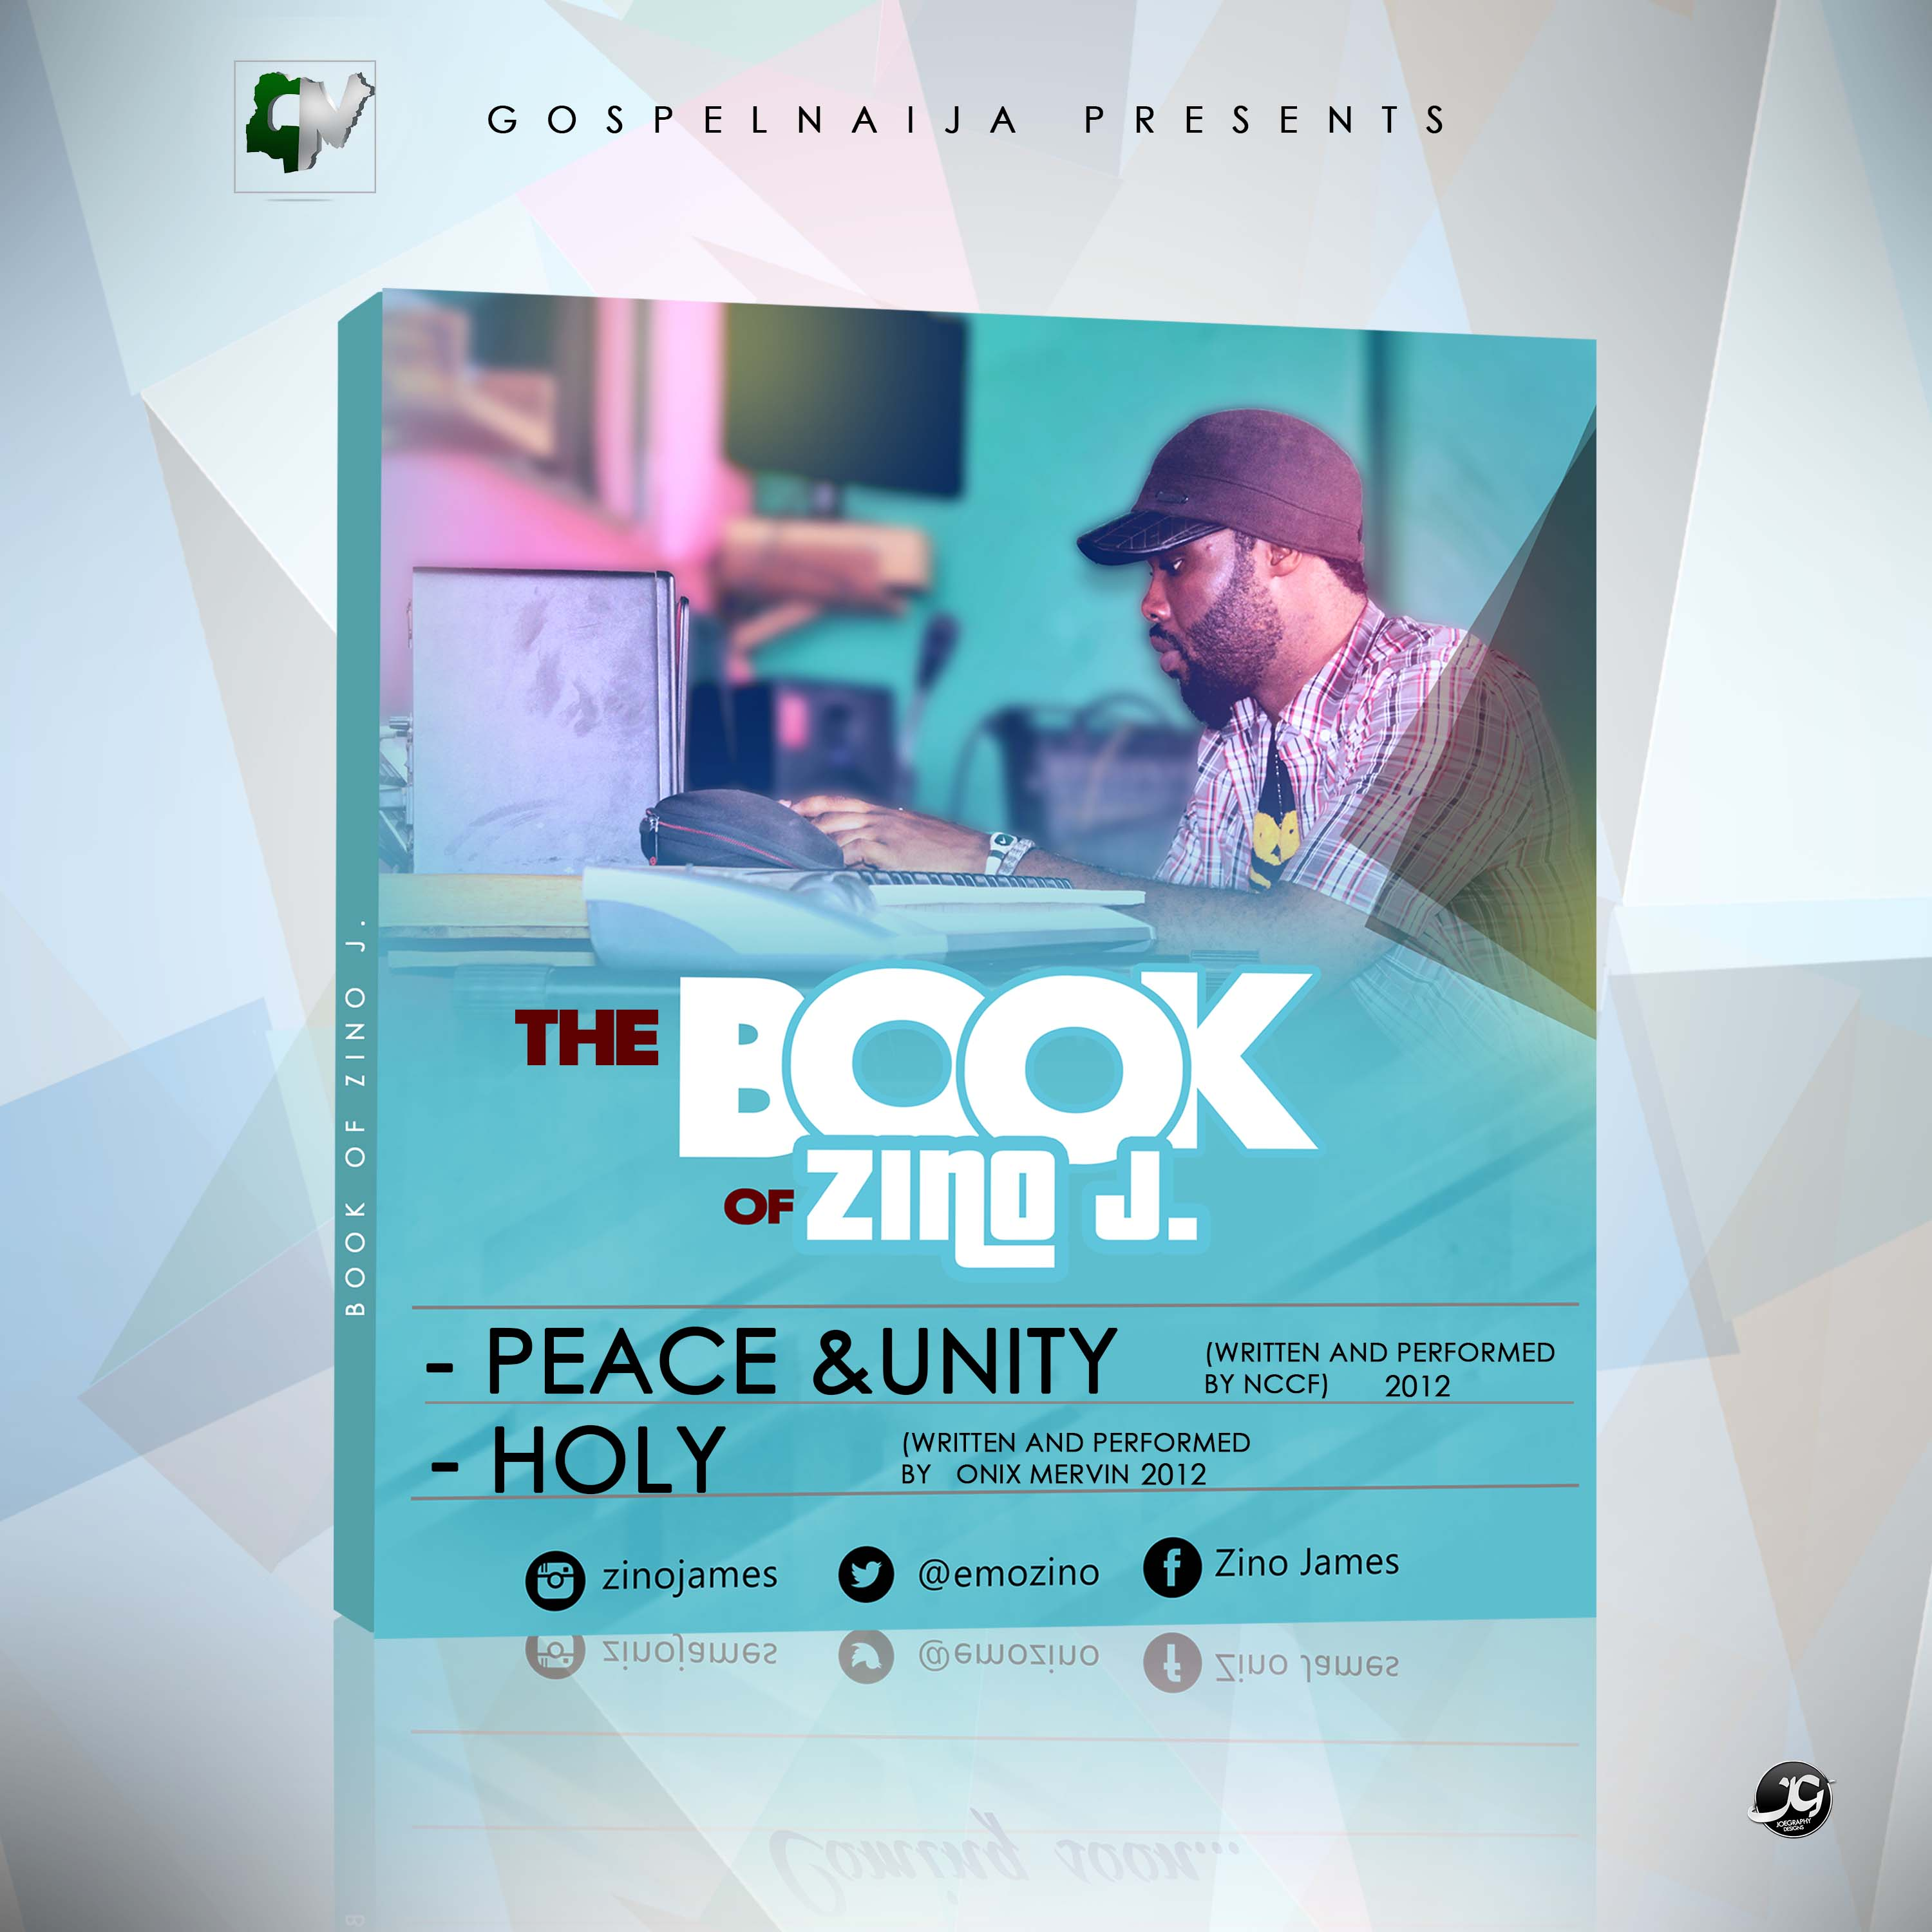 The Book of Zino J Chapter 1 - PEACE & UNITY + HOLY